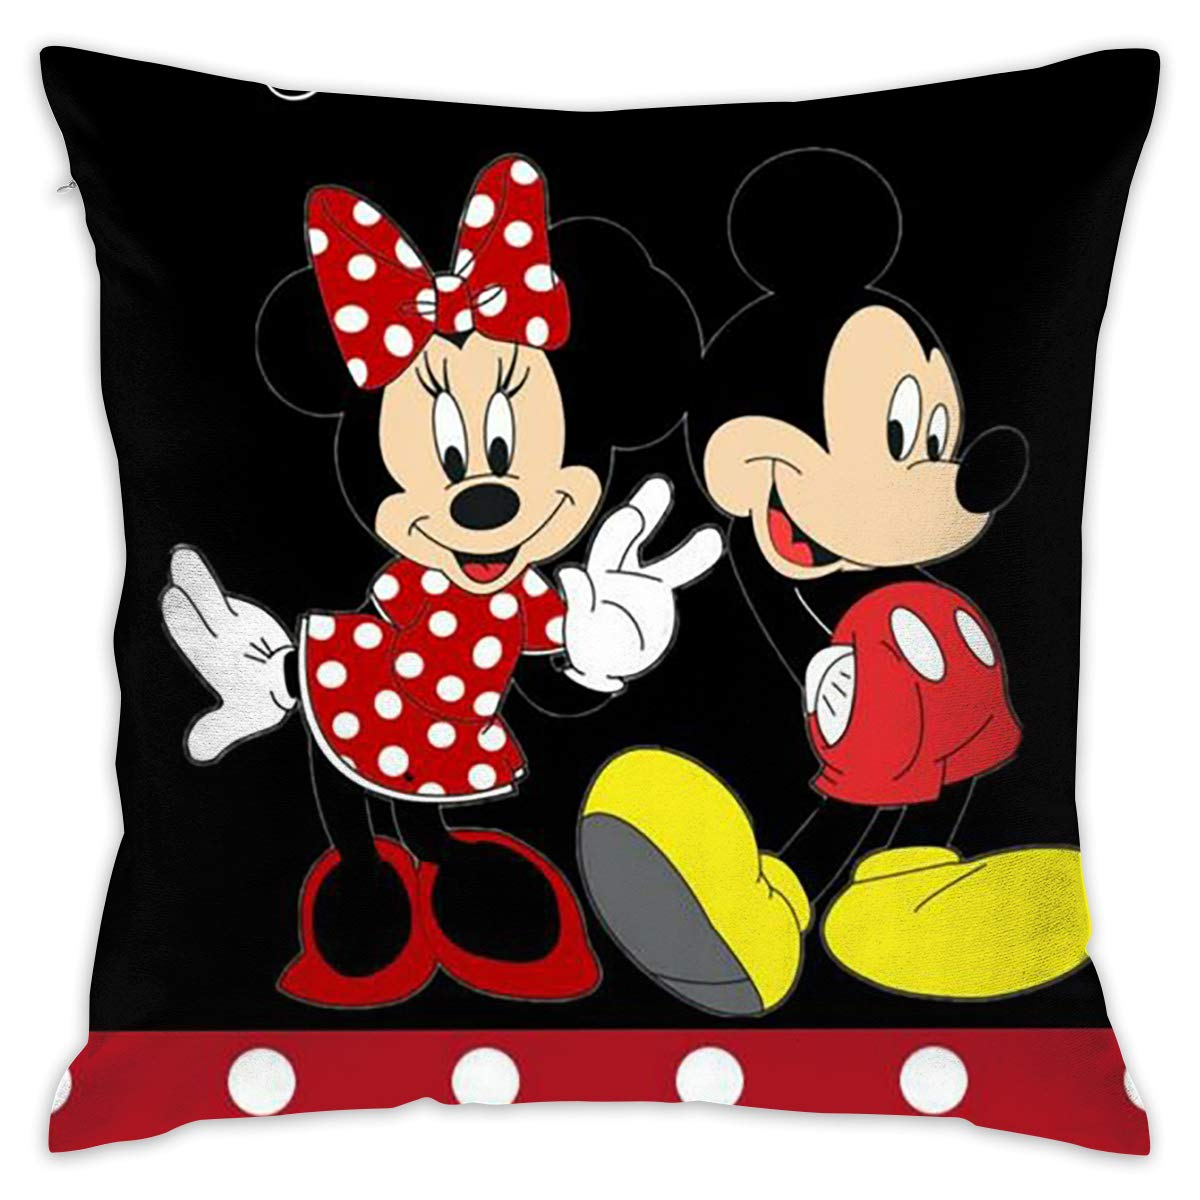 LIUYAN Pillow Cover Cushion Cover Mickey Mouse Decorative Pillow Case Sofa Seat Car Pillowcase Soft 18x18 Inch